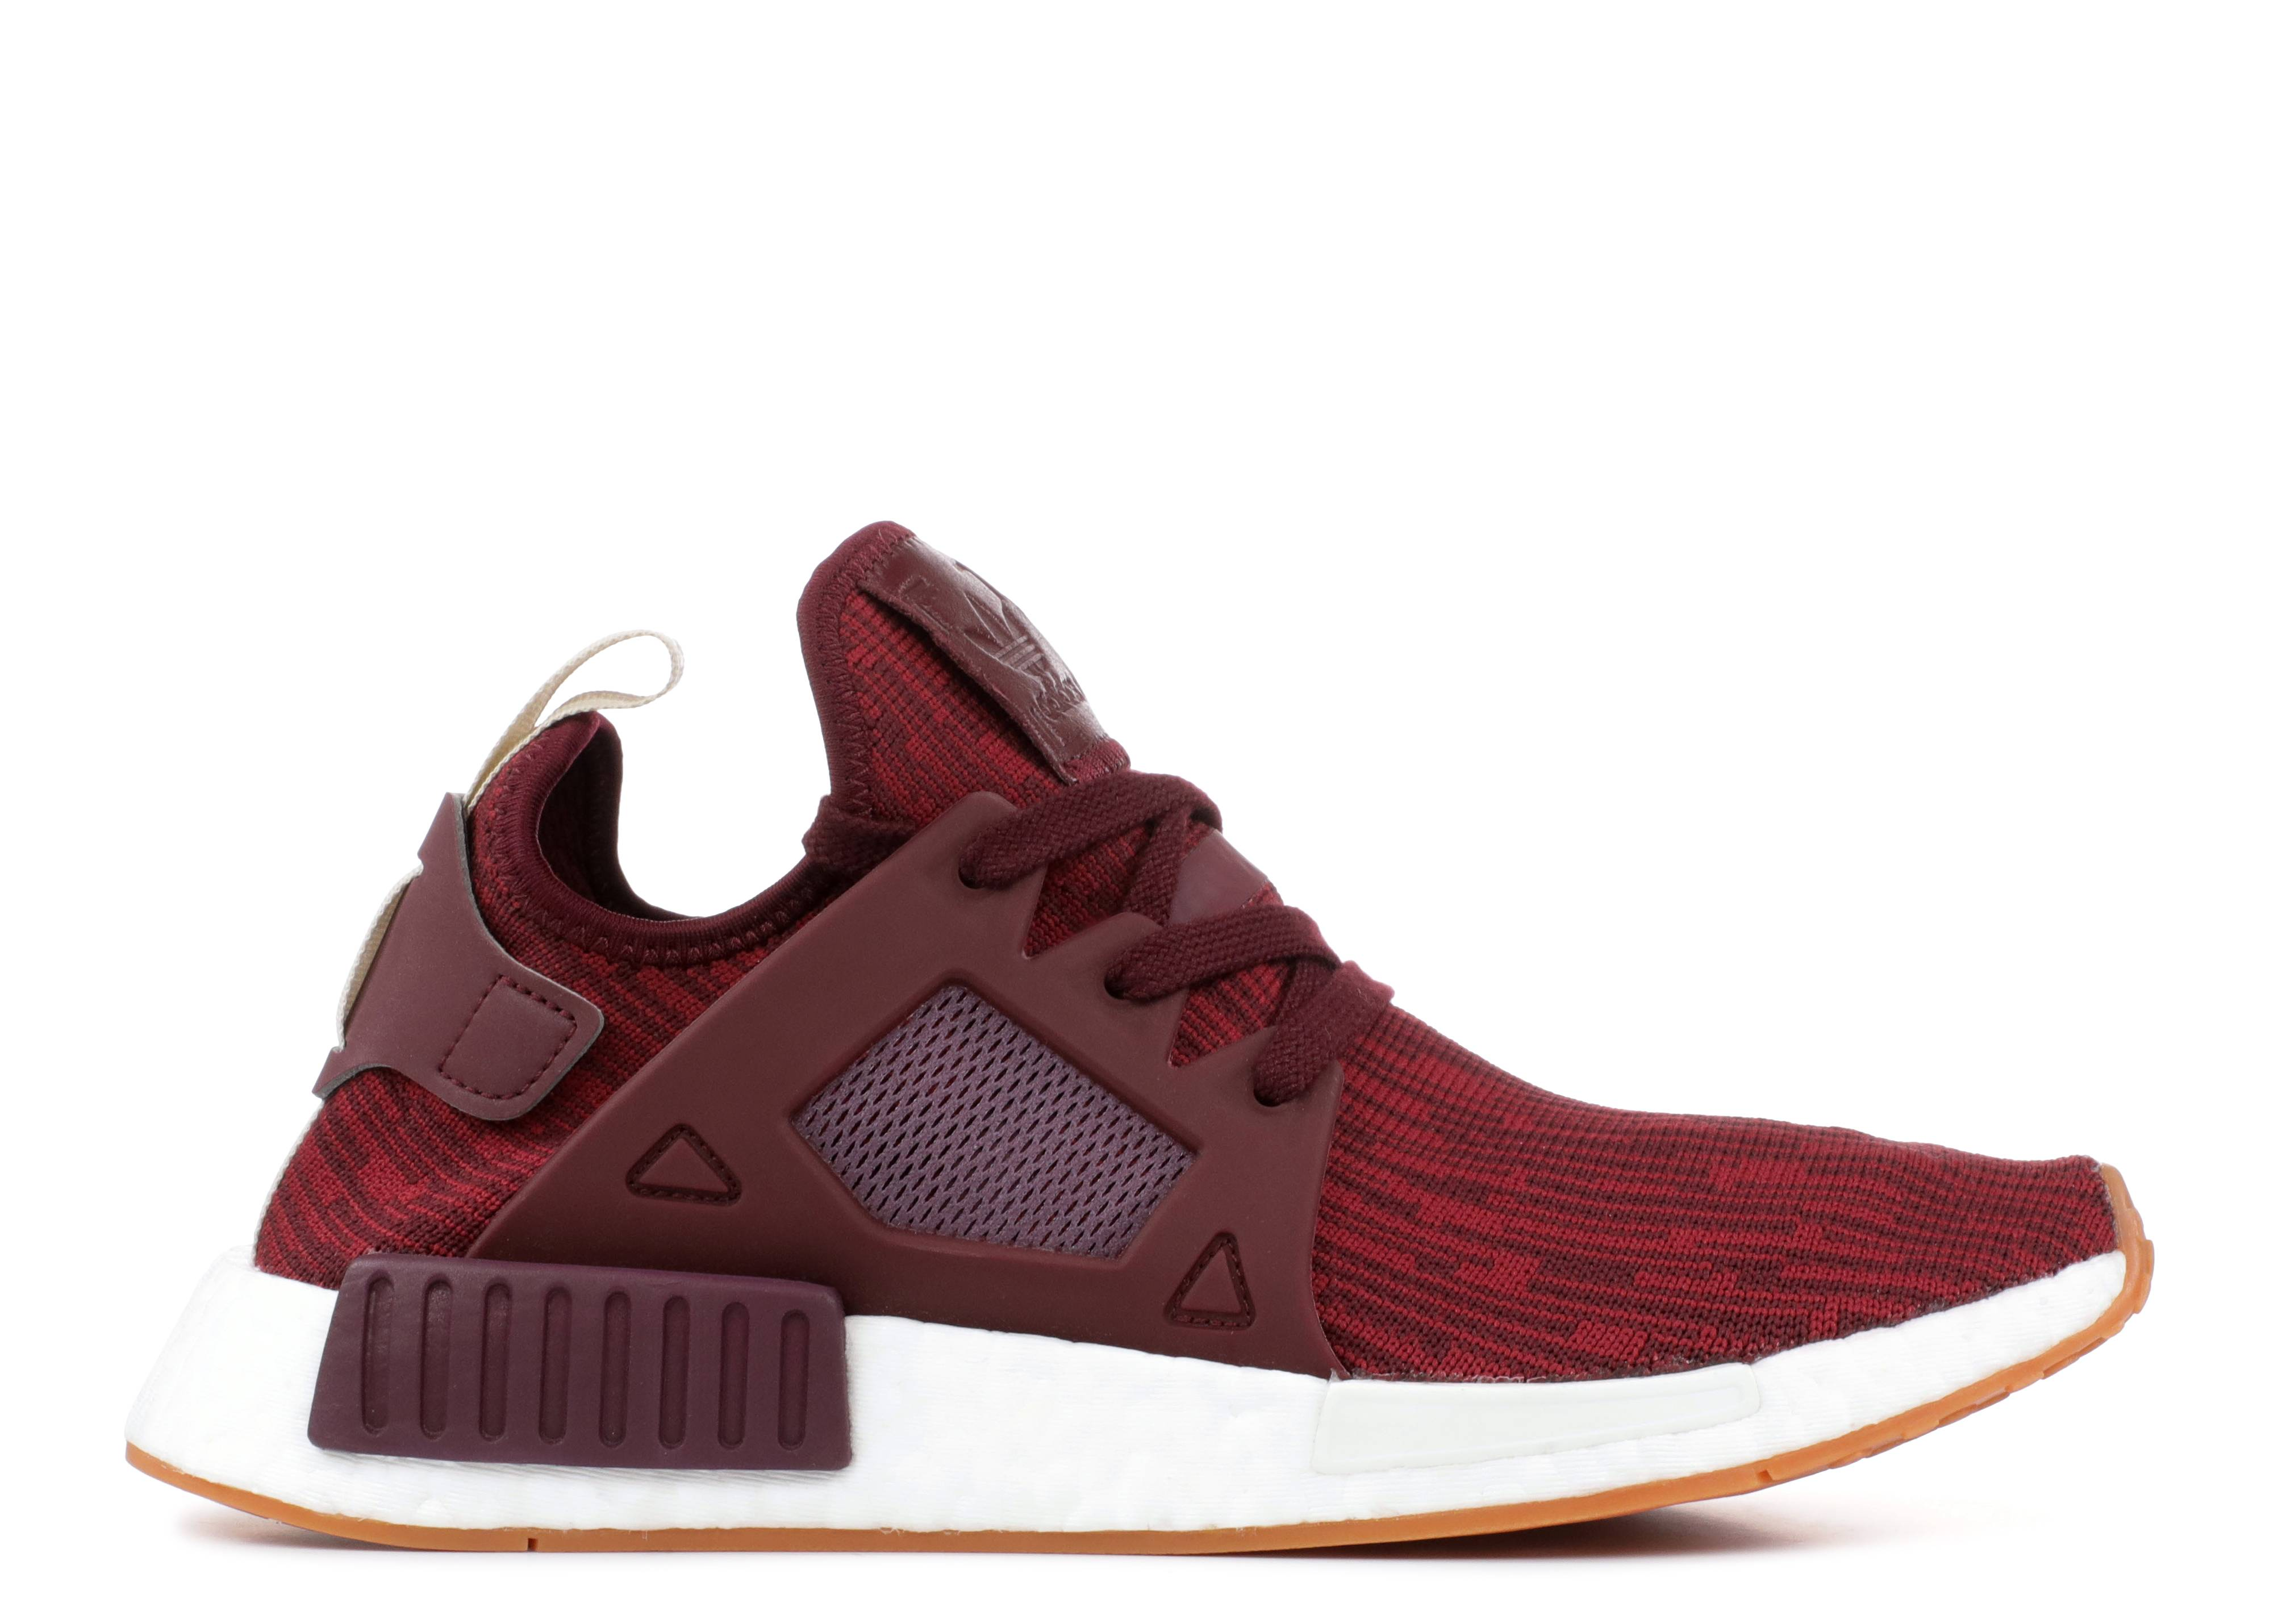 check out 6bd05 b756c NMD XR1 PK W